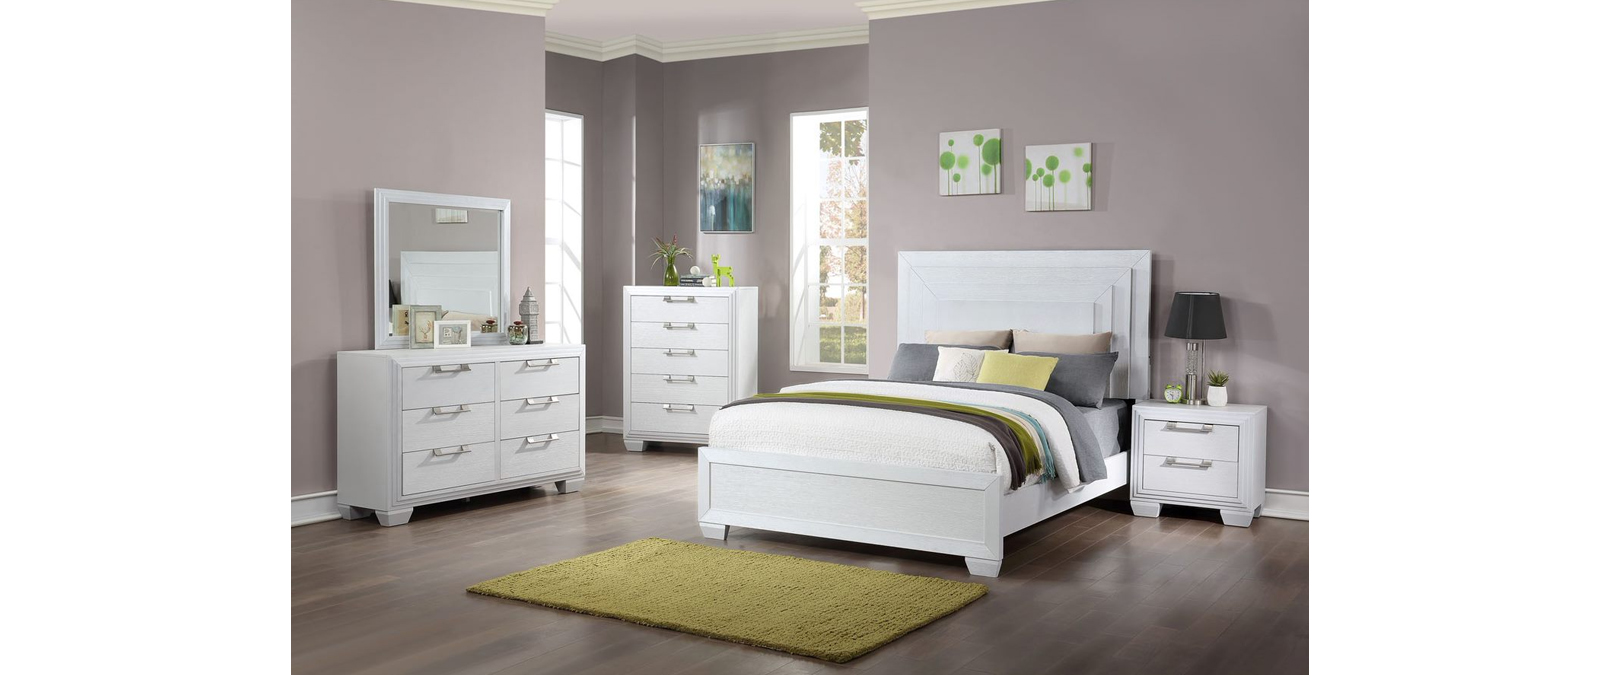 Fantasy Youth Bedroom Queen Bed 3pc Set